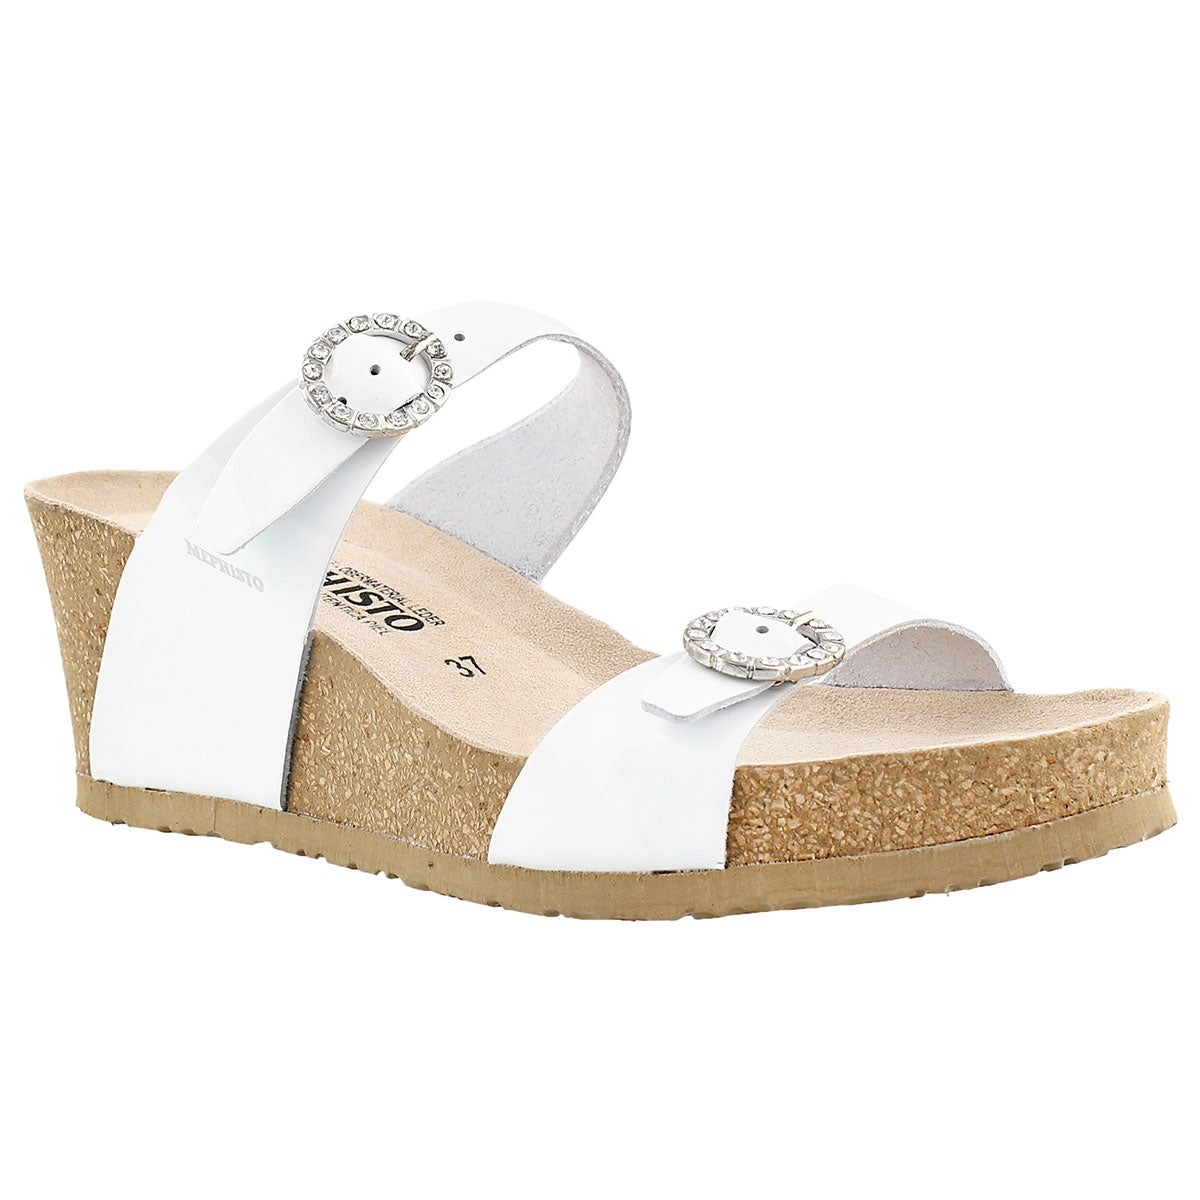 Women's LIDIA wht pat cork footbed wedge sandals